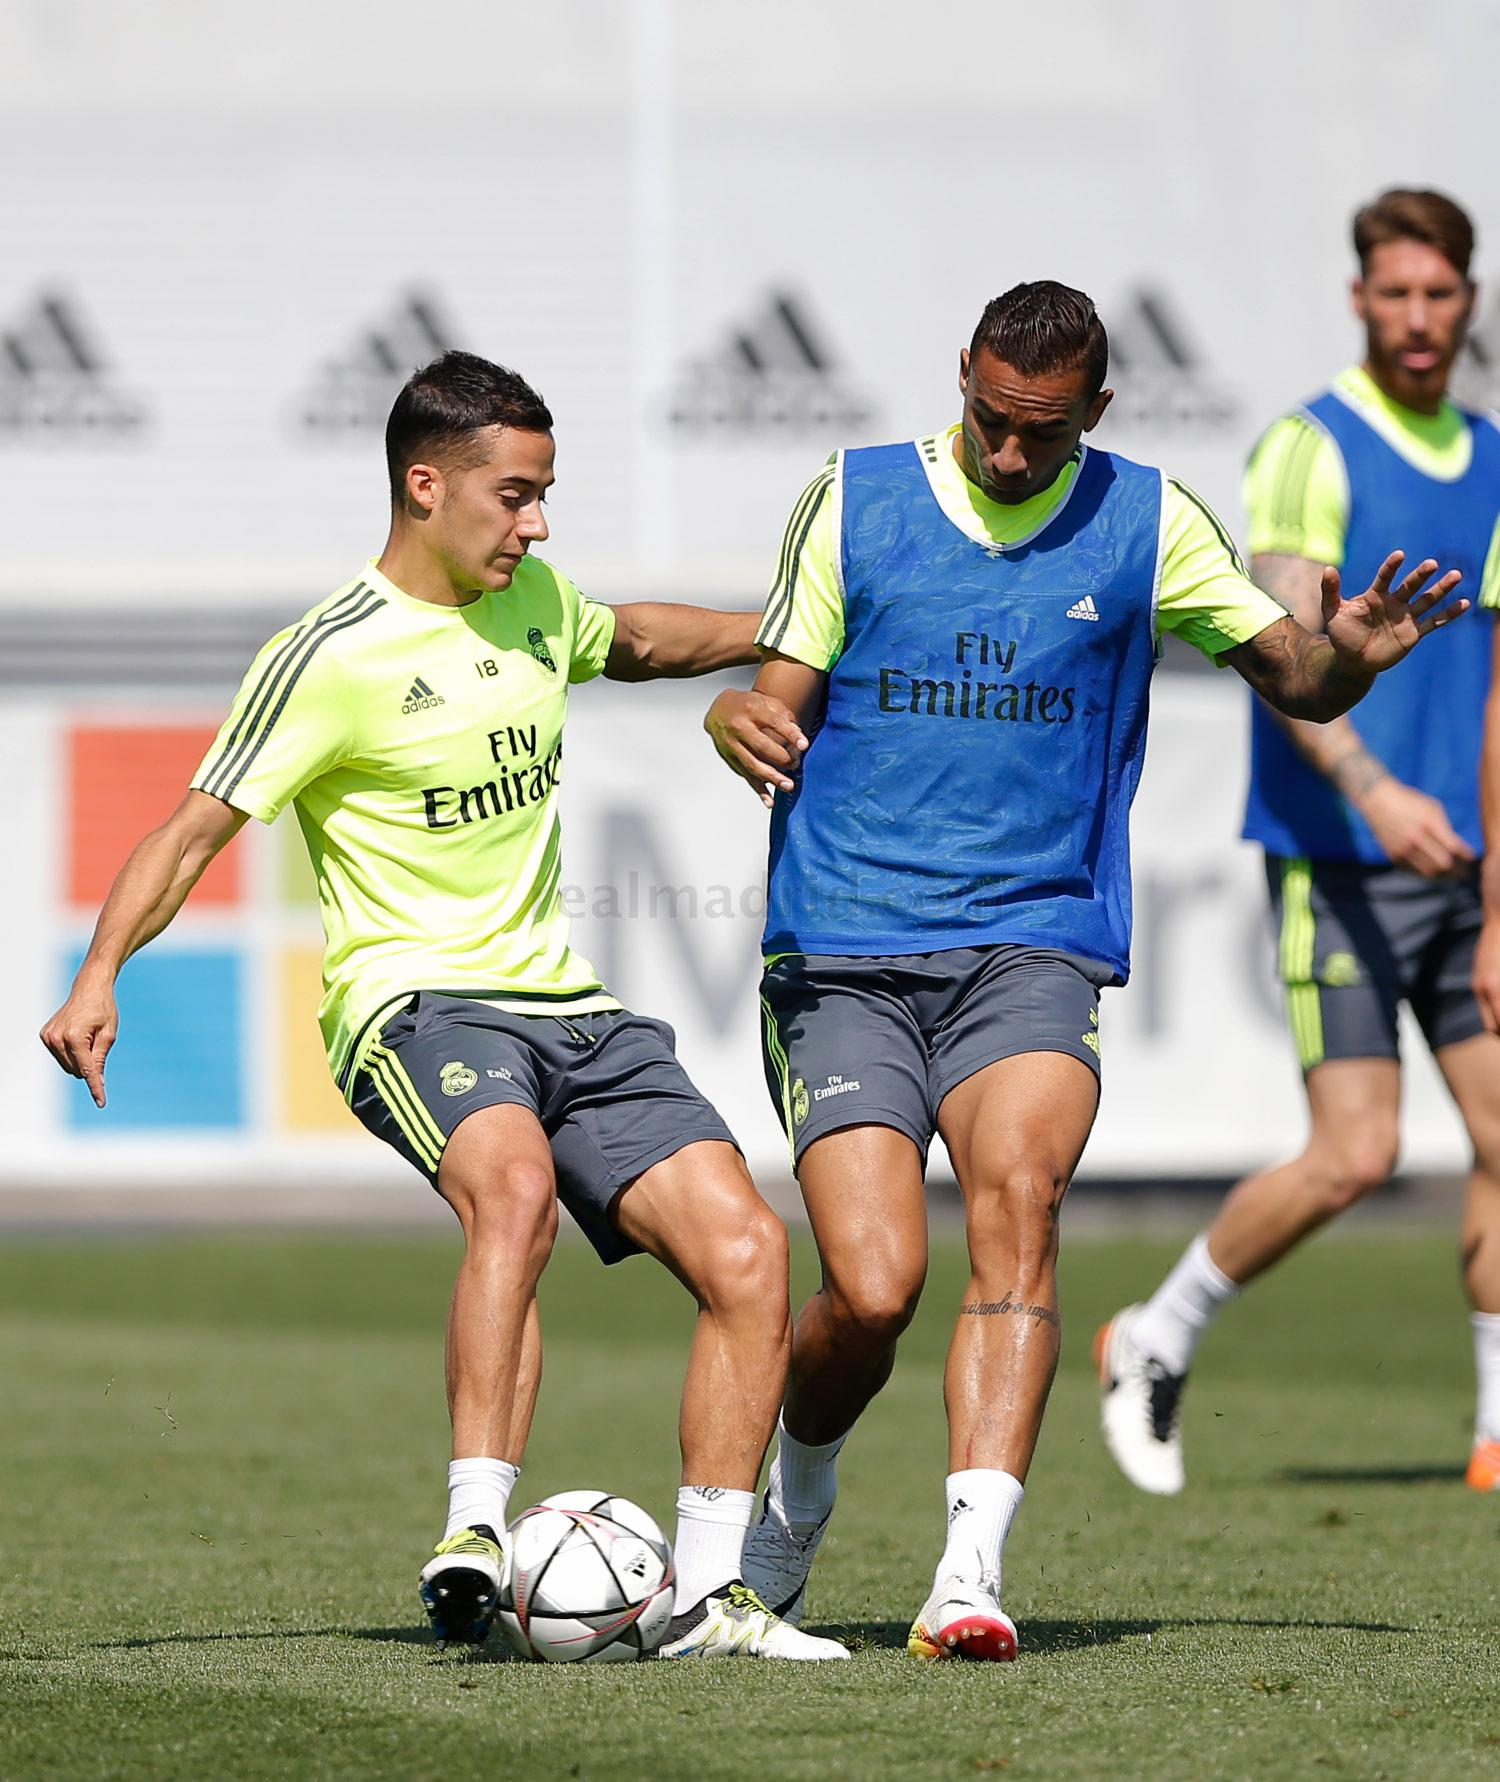 Real Madrid - Entrenamiento del Real Madrid - 18-05-2016